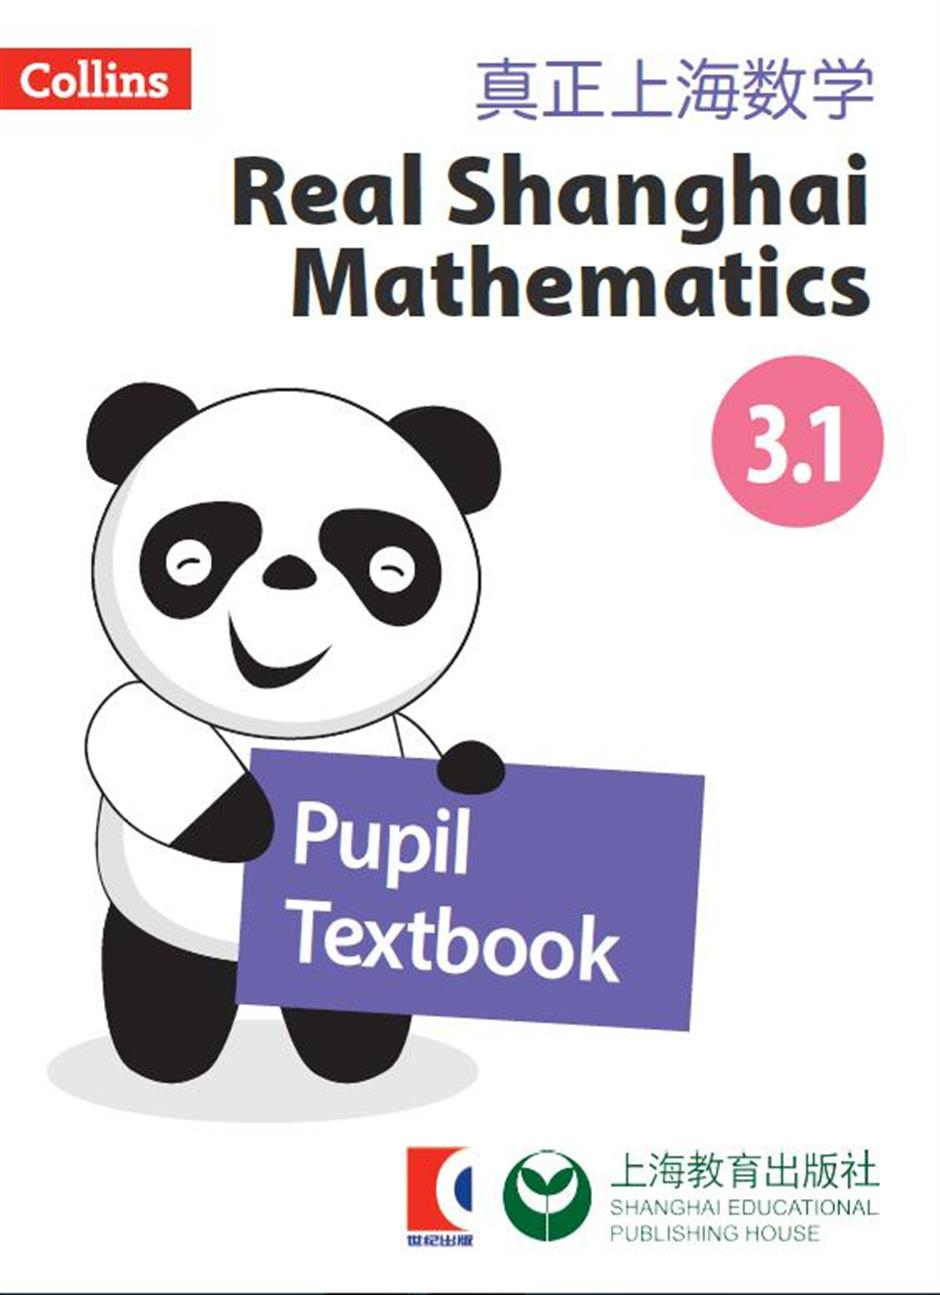 Local publisher to send Shanghai maths textbooks abroad